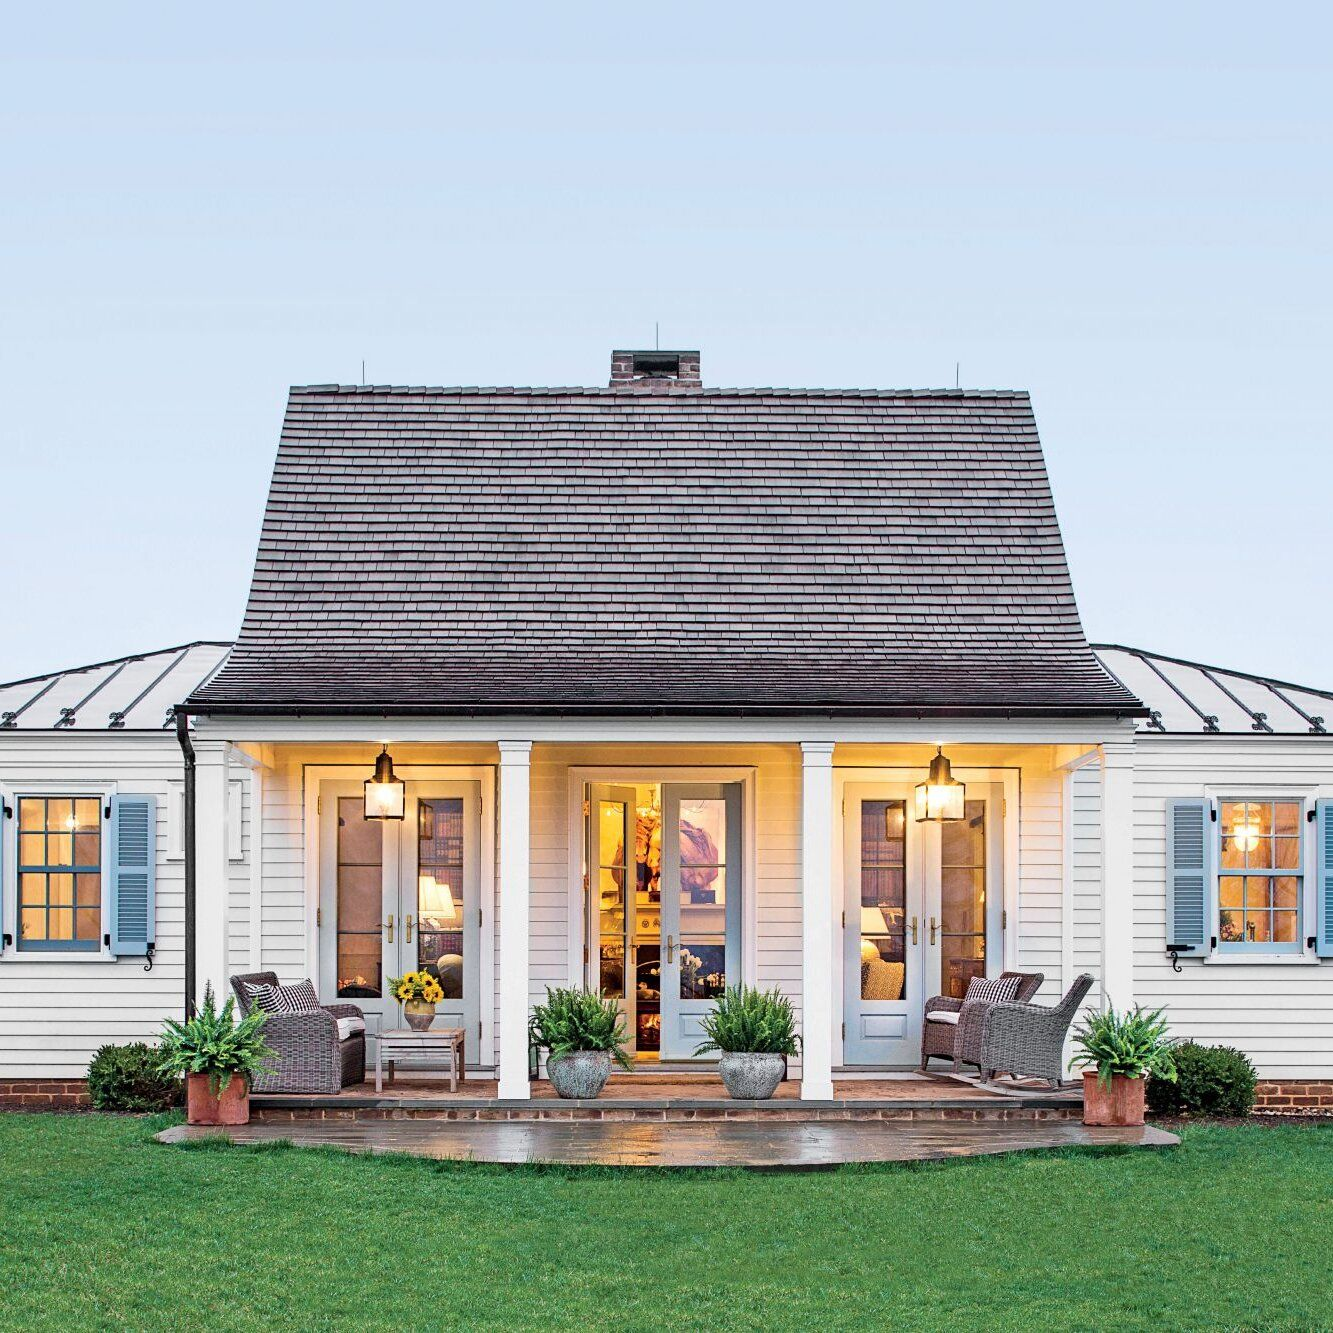 The Art Of Living Small Small Cottage Designs Tiny House Plans Small Cottages Small Cottage House Plans